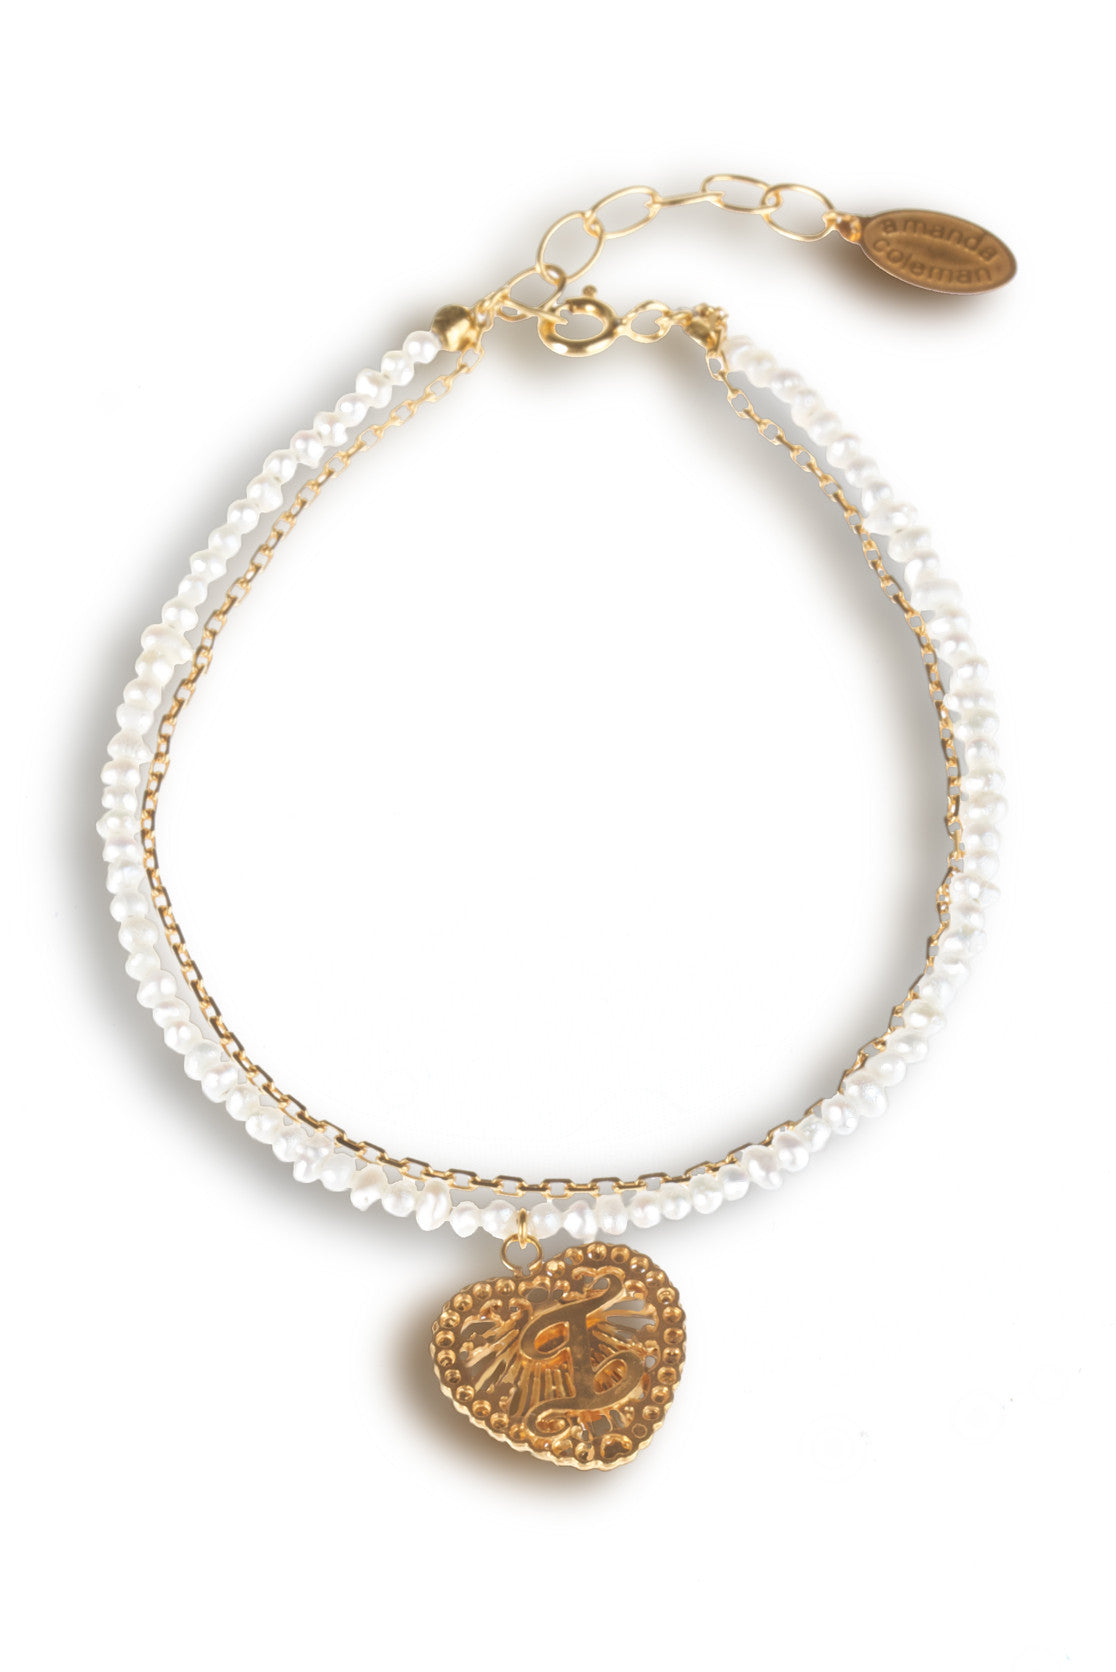 Initialed Love Heart and Pearl Bracelet